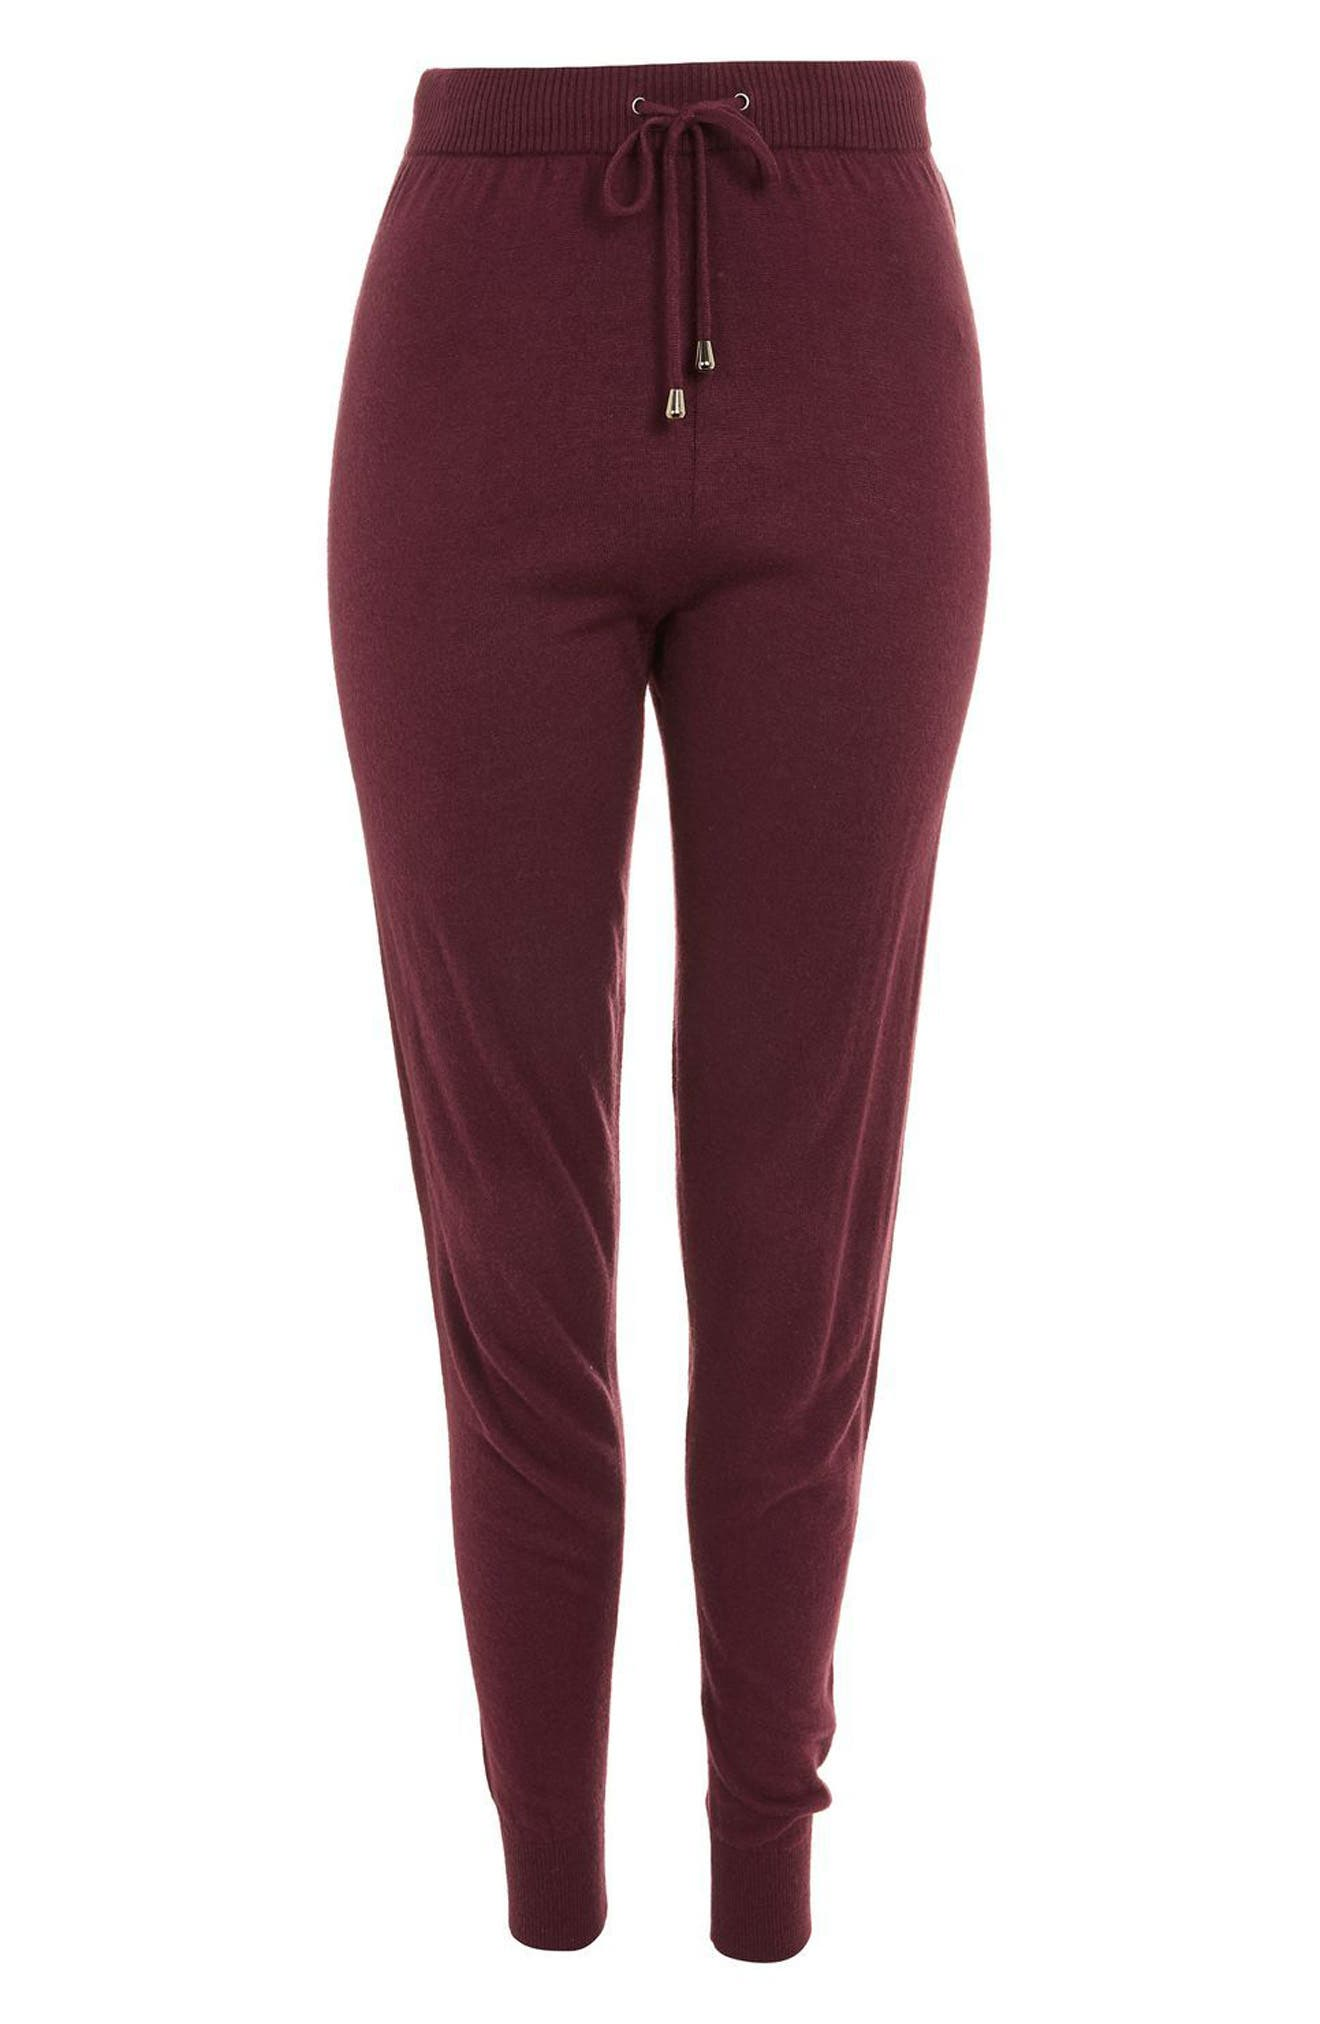 Jogger Lounge Pants,                             Alternate thumbnail 3, color,                             Berry Red